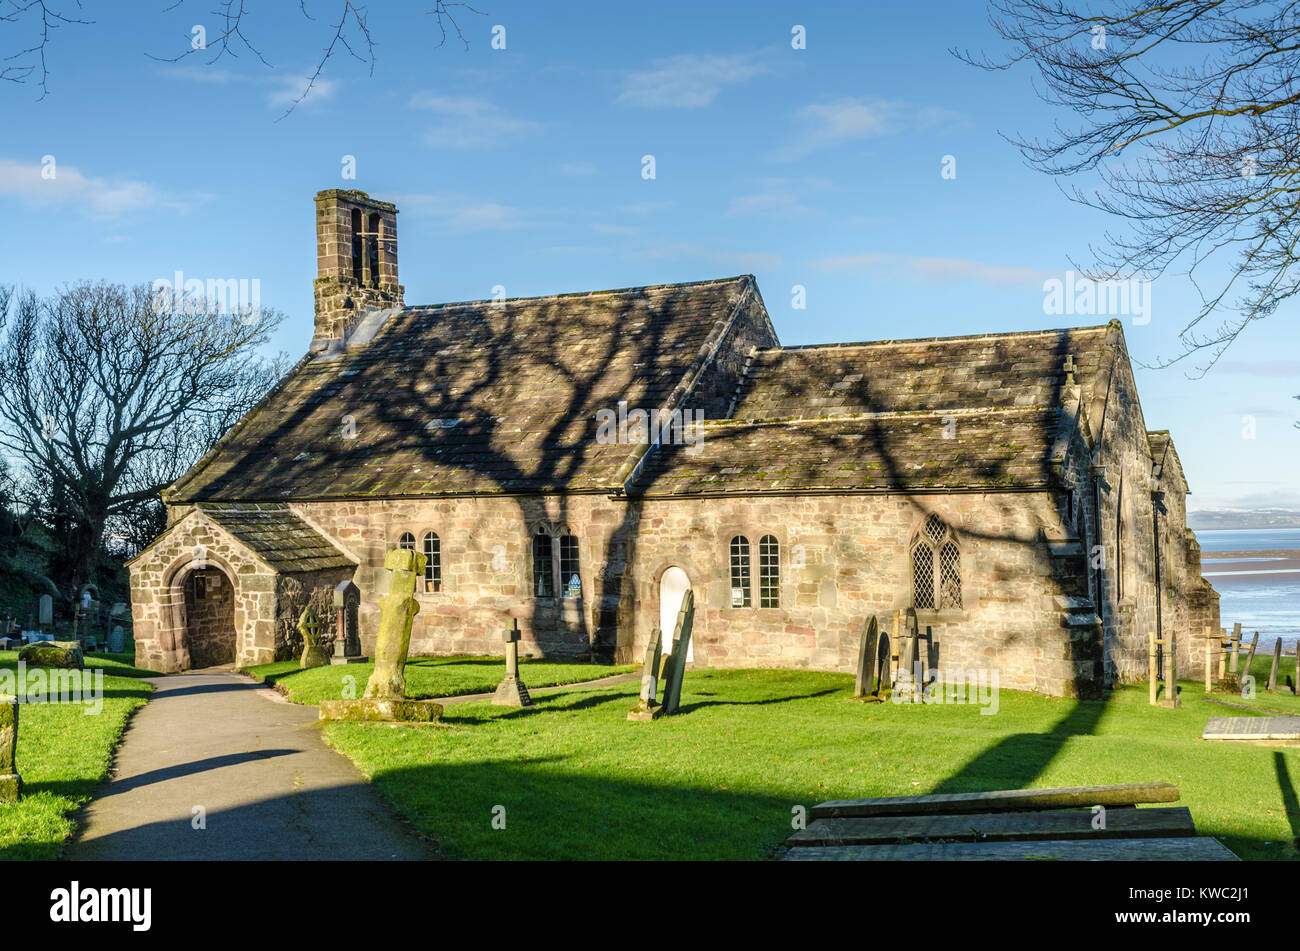 St Peter's Church in the village of Heysham, Lancashire, England. It is recorded in the National Heritage List - Stock Image